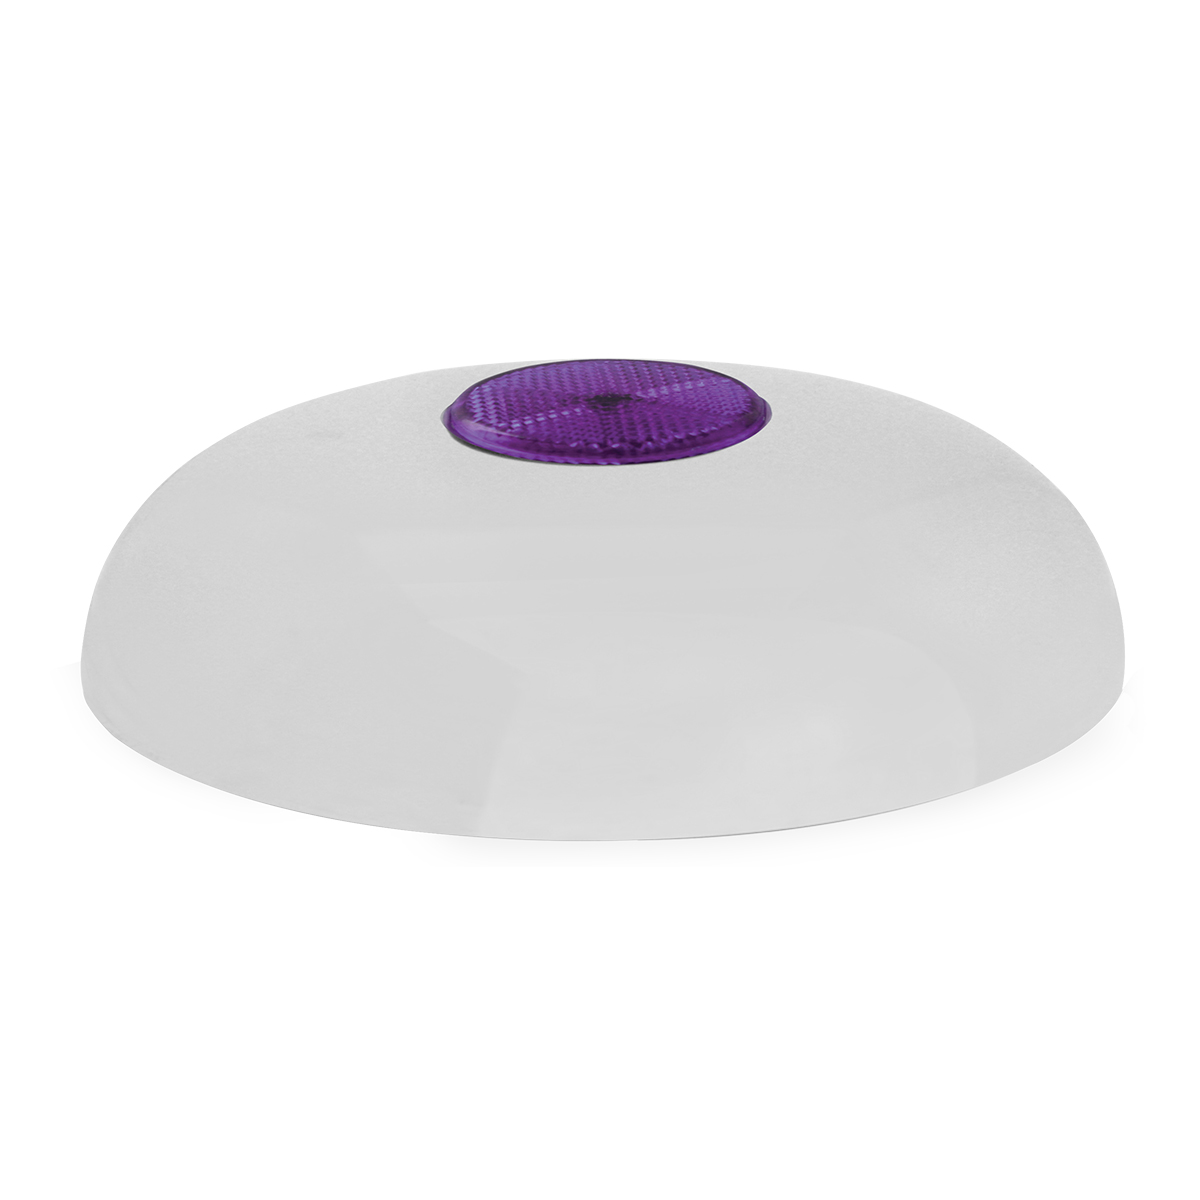 Chrome Plated Steel Horn Cover with Purple Reflector on Center